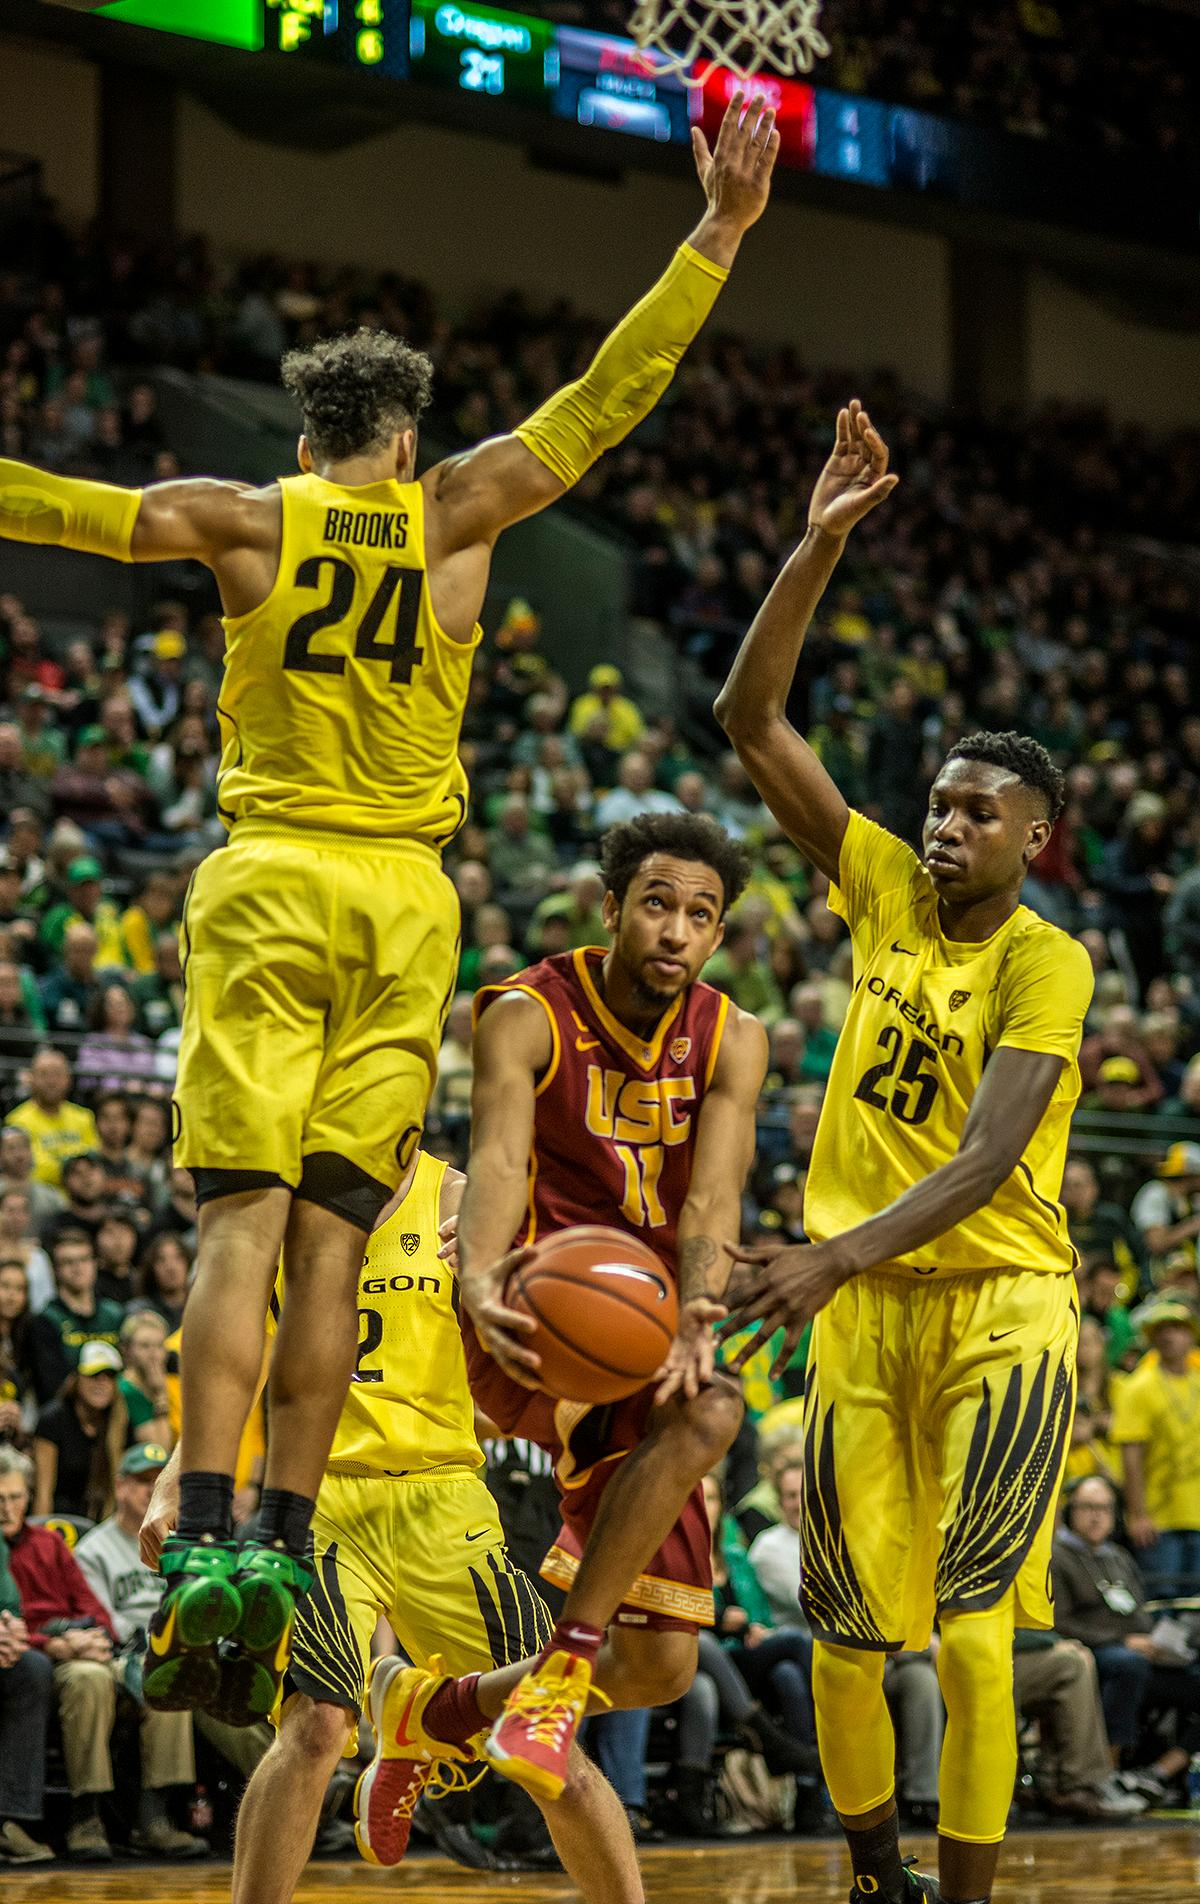 The Oregon Ducks beat the previously undefeated No.22 USC Trojans 84-61 on Friday night at Matthew Knight Arena. This win provided Head Coach Dana Altman with his 700th career victory. Dillon Brooks scored 28 points, Payton Pritchard had seven assists, and Jordan Bell and Chris Boucher combined for 20 points. Photo by Rhianna Gelhart, Oregon News Lab